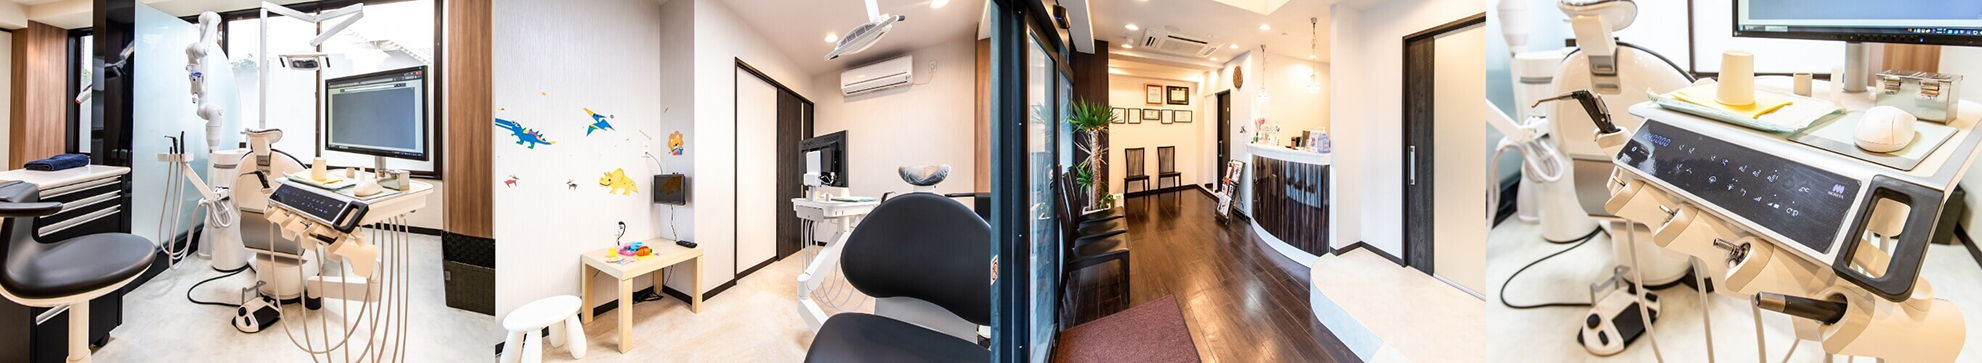 港南台NEXUS DENTAL CLINIC